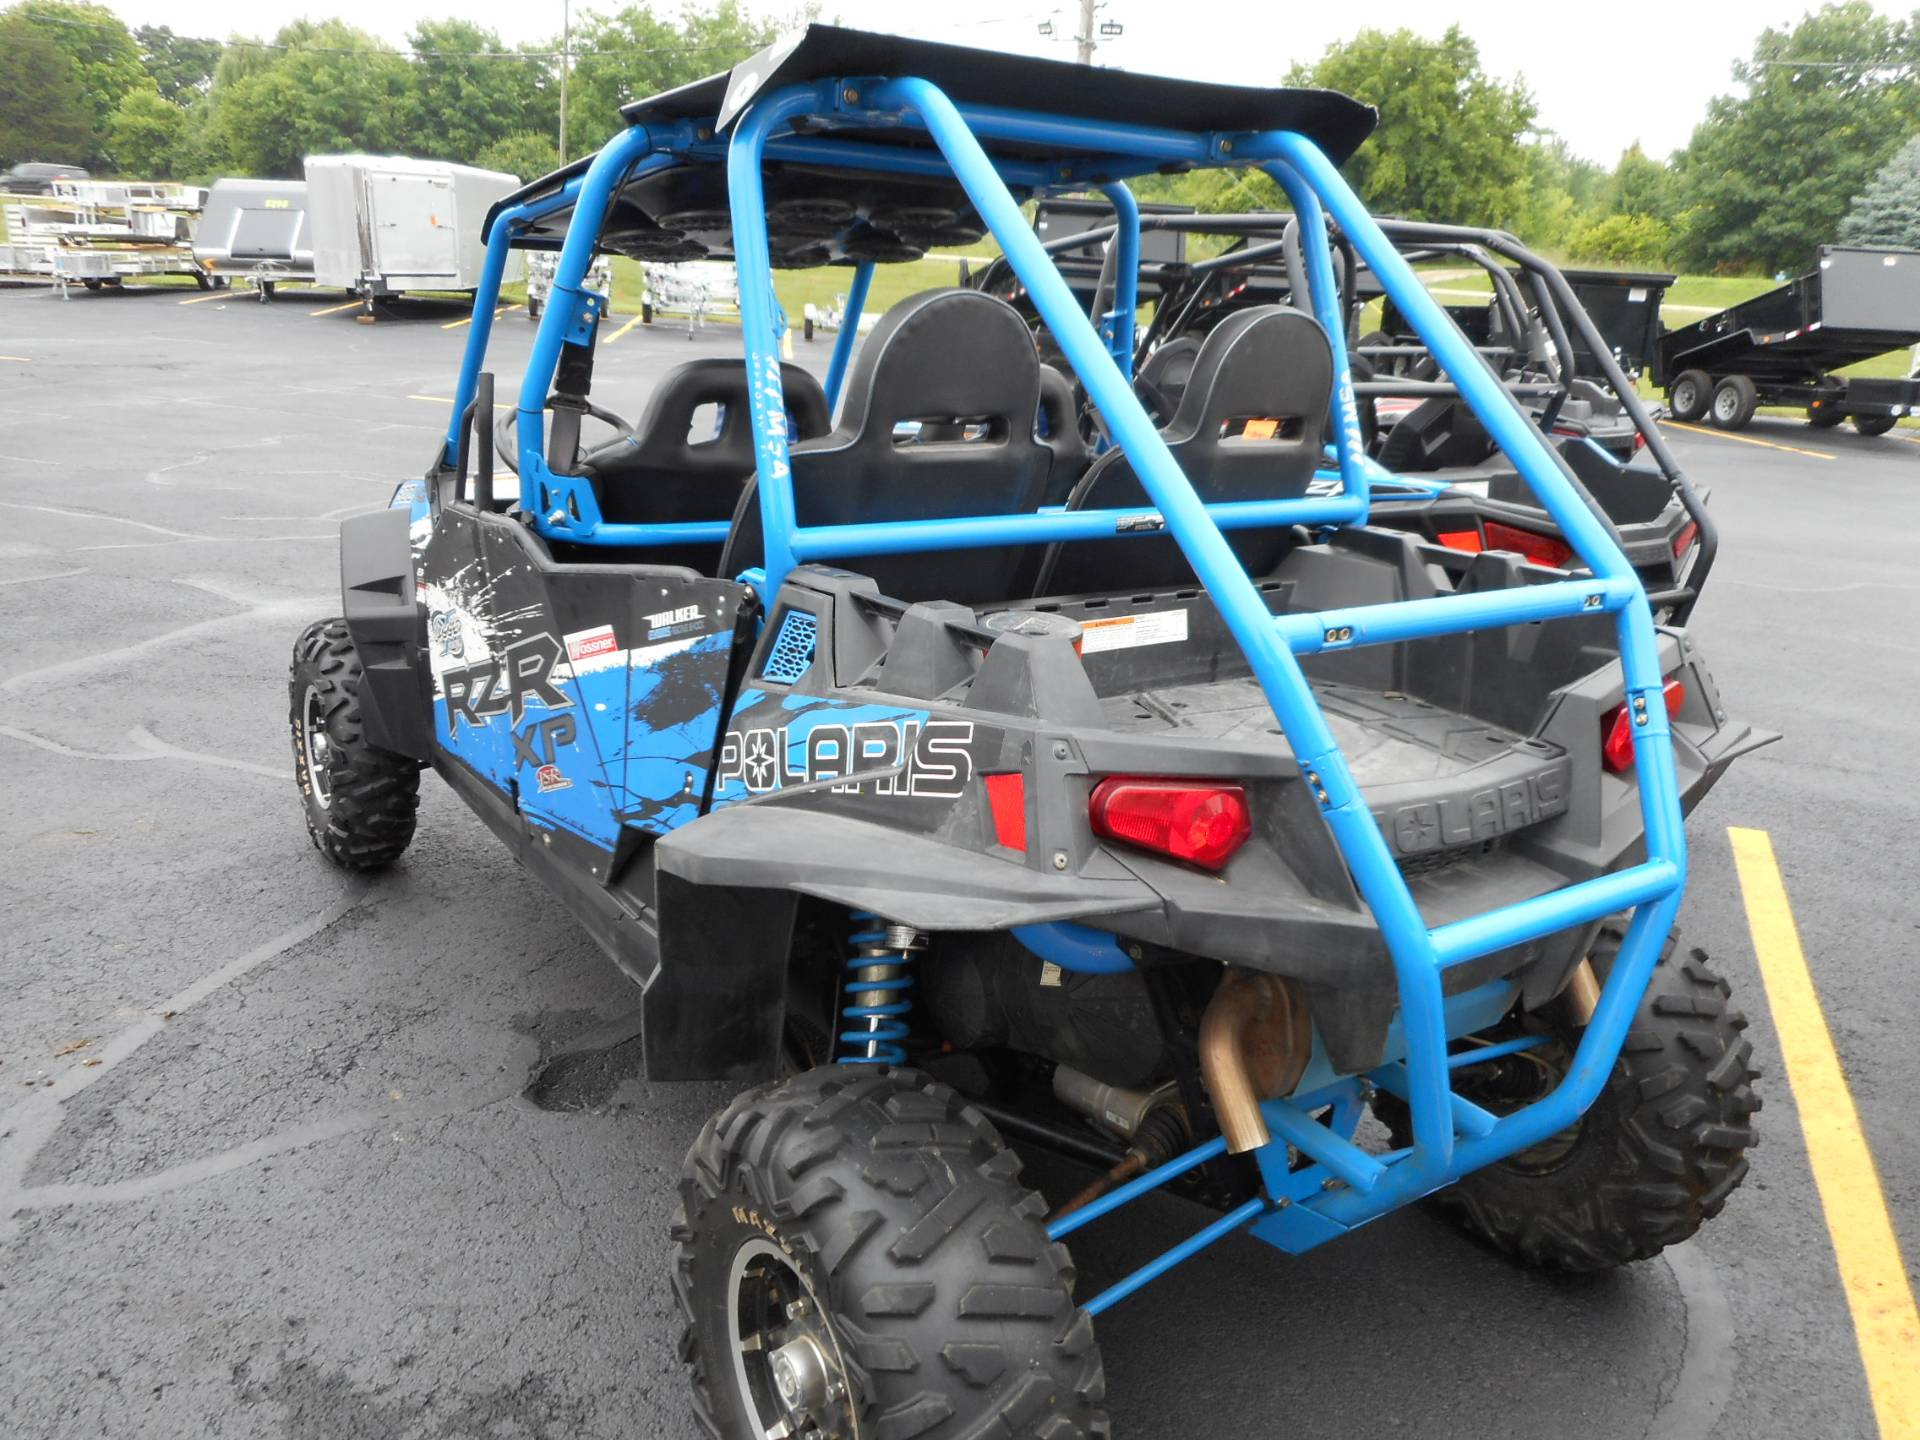 2013 Polaris RZR XP 900 H.O. Jagged X Edition 4